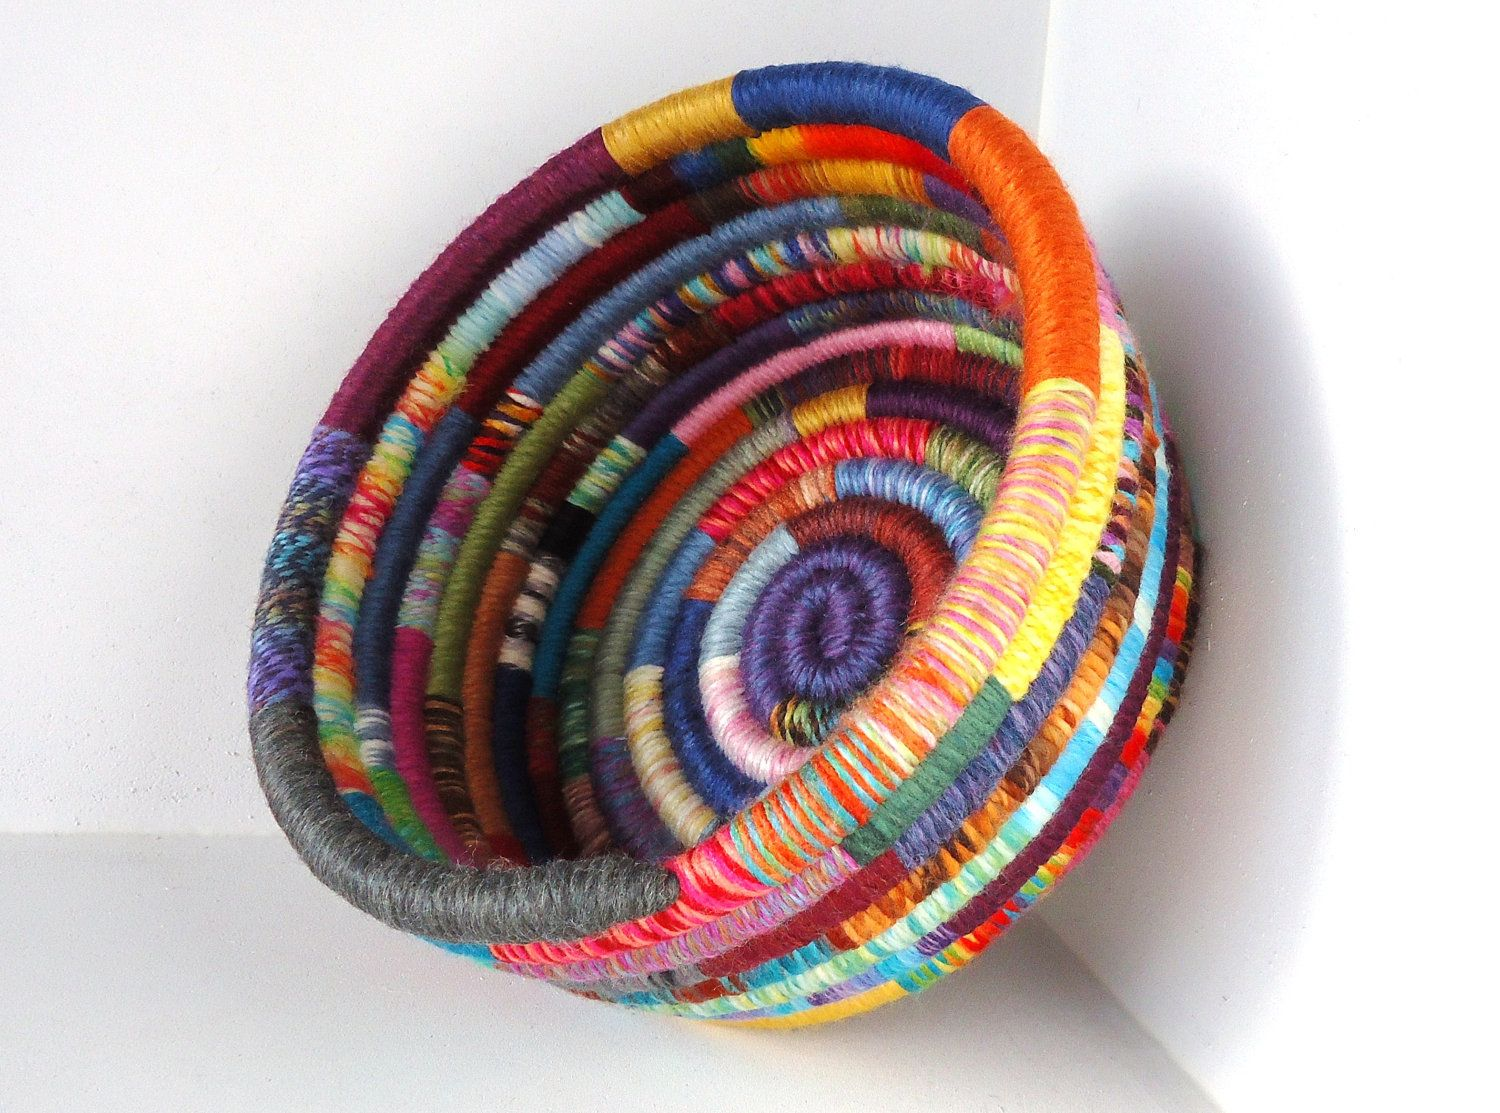 How To Make A Woven Yarn Basket : Handmade basket colorful yarn coiled multicolored